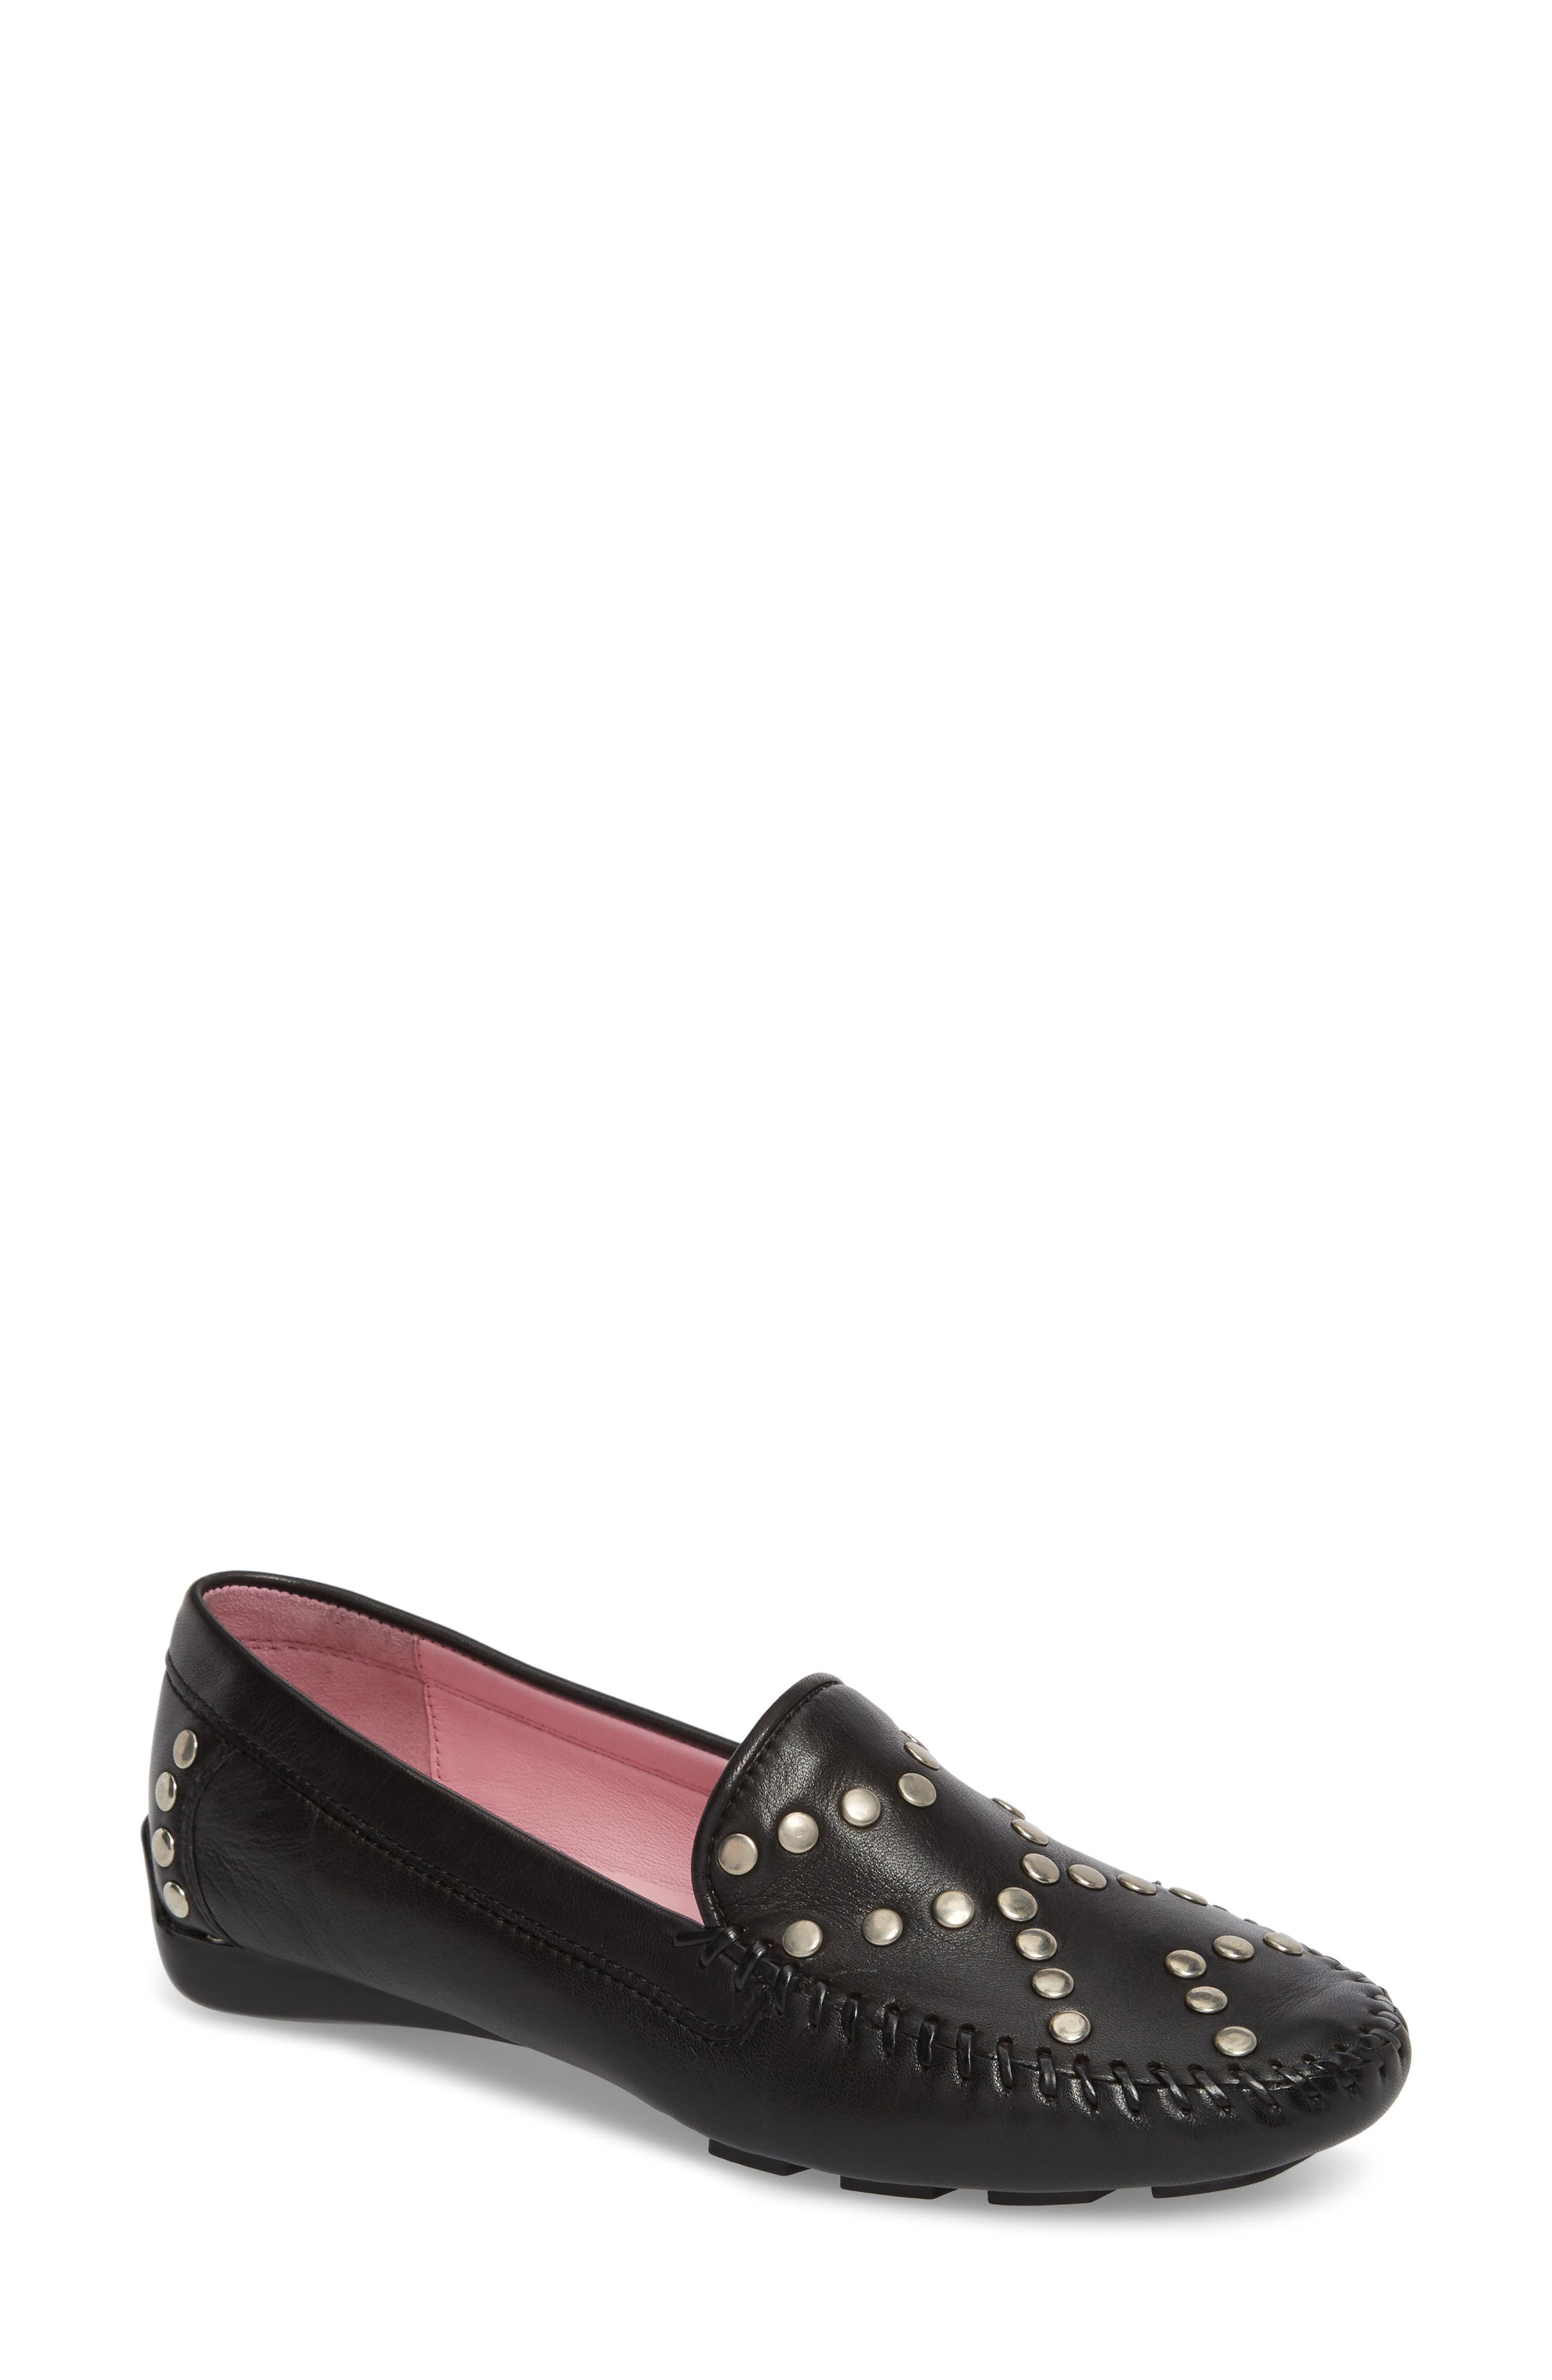 Tinae Studded Loafer,                             Main thumbnail 1, color,                             Black Leather